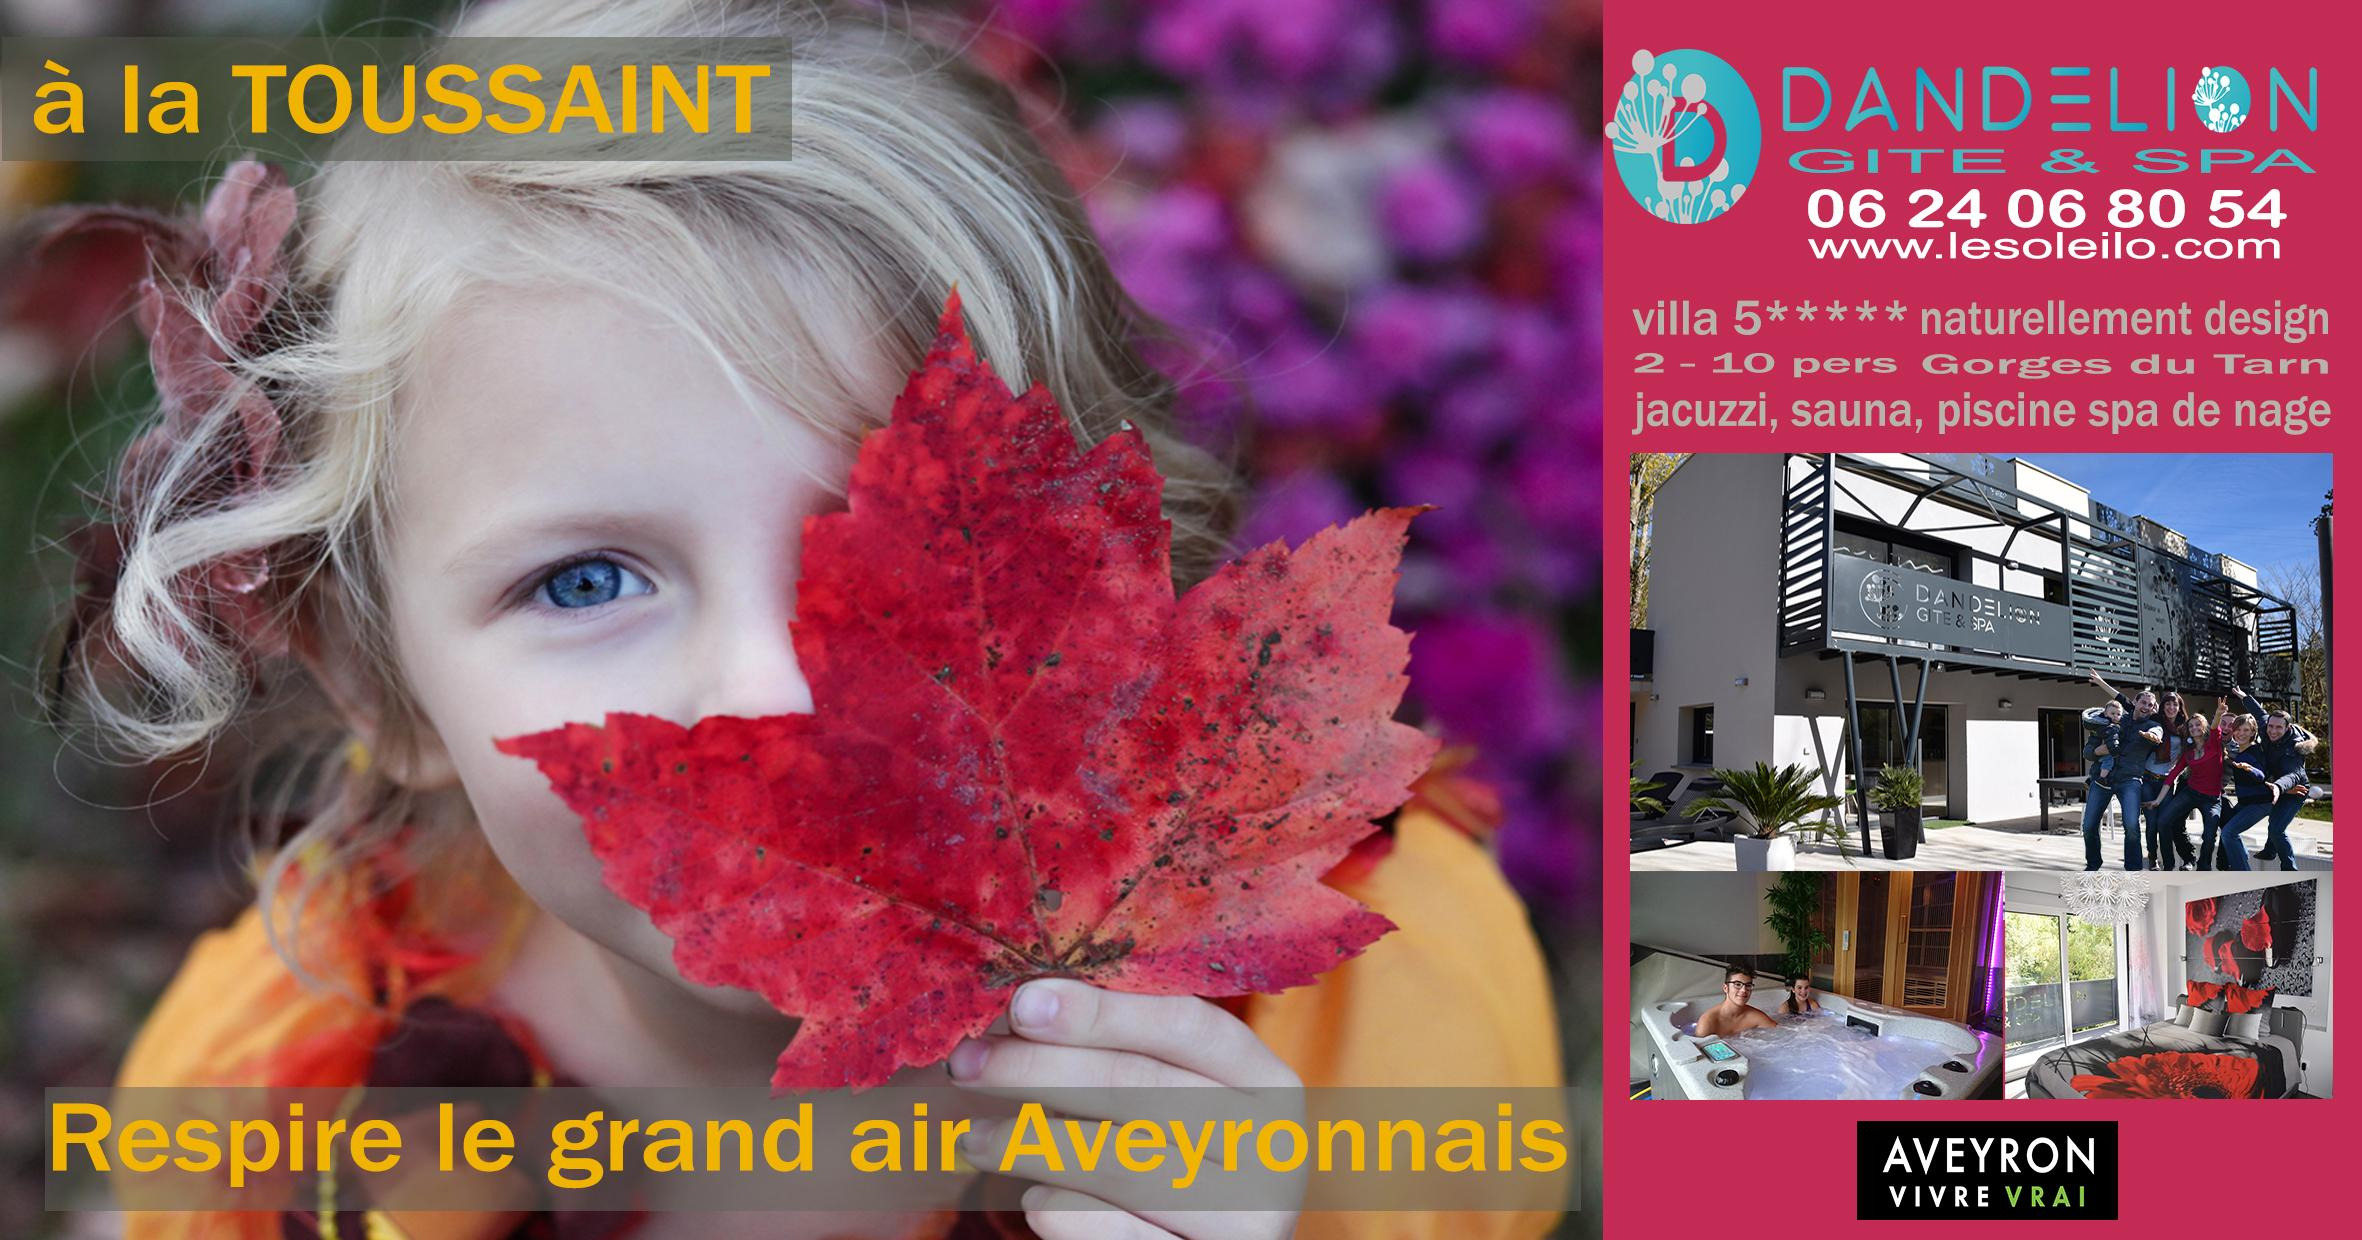 All Saints' Day holidays with family or friends and a stay well-being in a hot tub with jacuzzi in the Gorges du Tarn